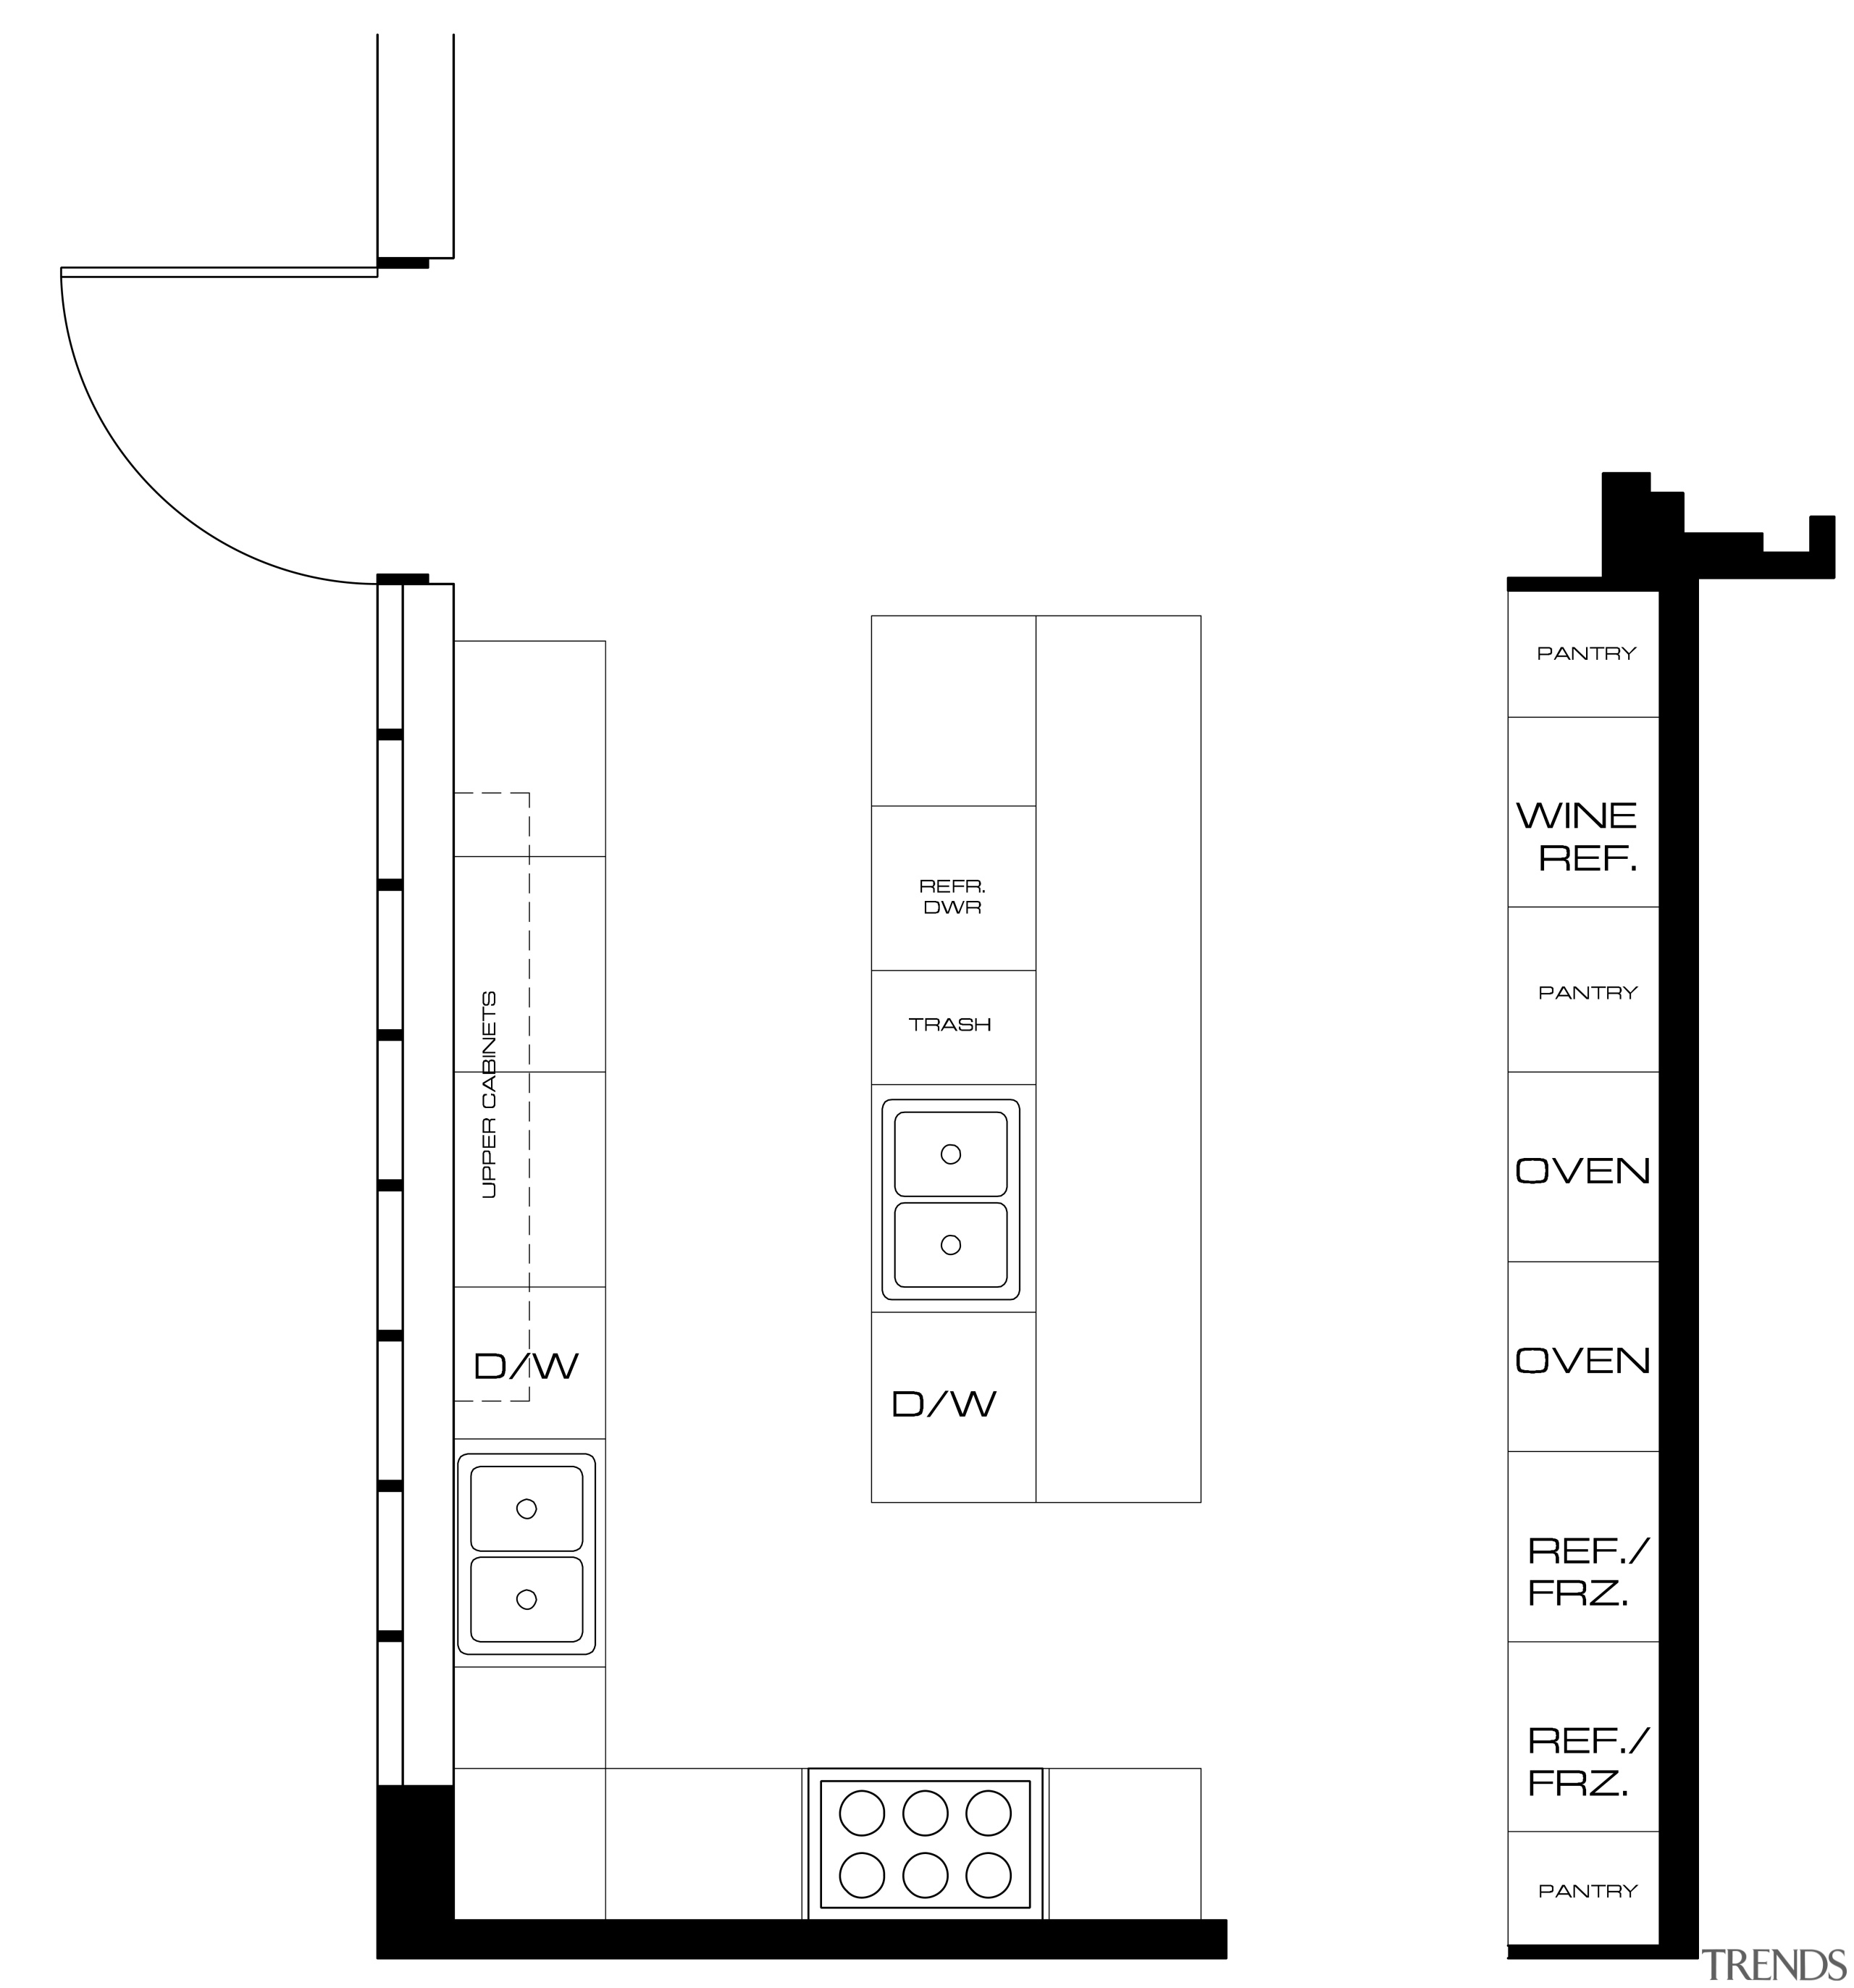 View of floor plans for kitchen - View area, black and white, diagram, font, line, product design, structure, text, white